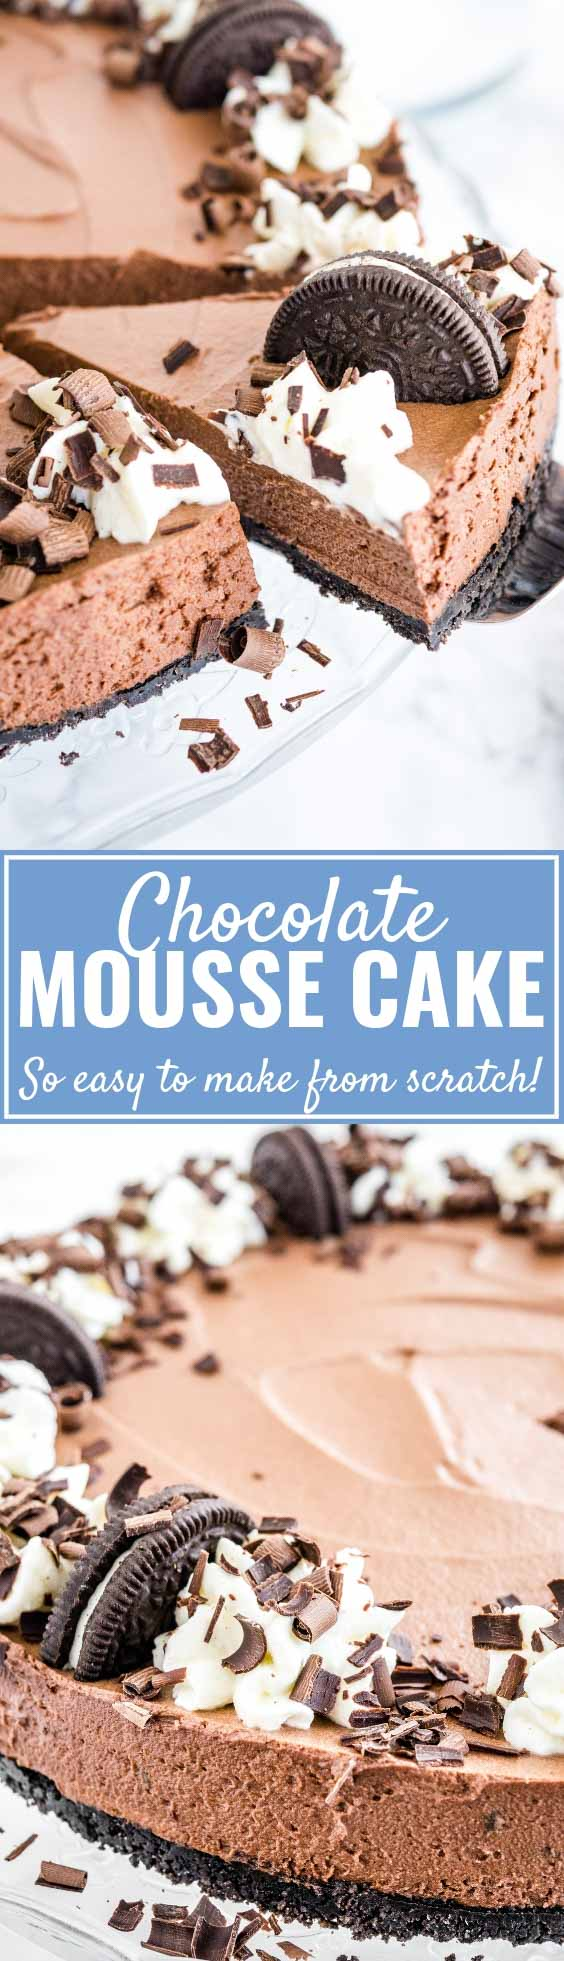 This Chocolate Mousse Cake is every chocolate lover's dream and can be made in advance! An Oreo crust filled with a decadent chocolate mousse topped with more Oreos, homemade whipped cream, and chocolate shavings. This no-bake dessert is perfect for special occasions but so easy to make from scratch!